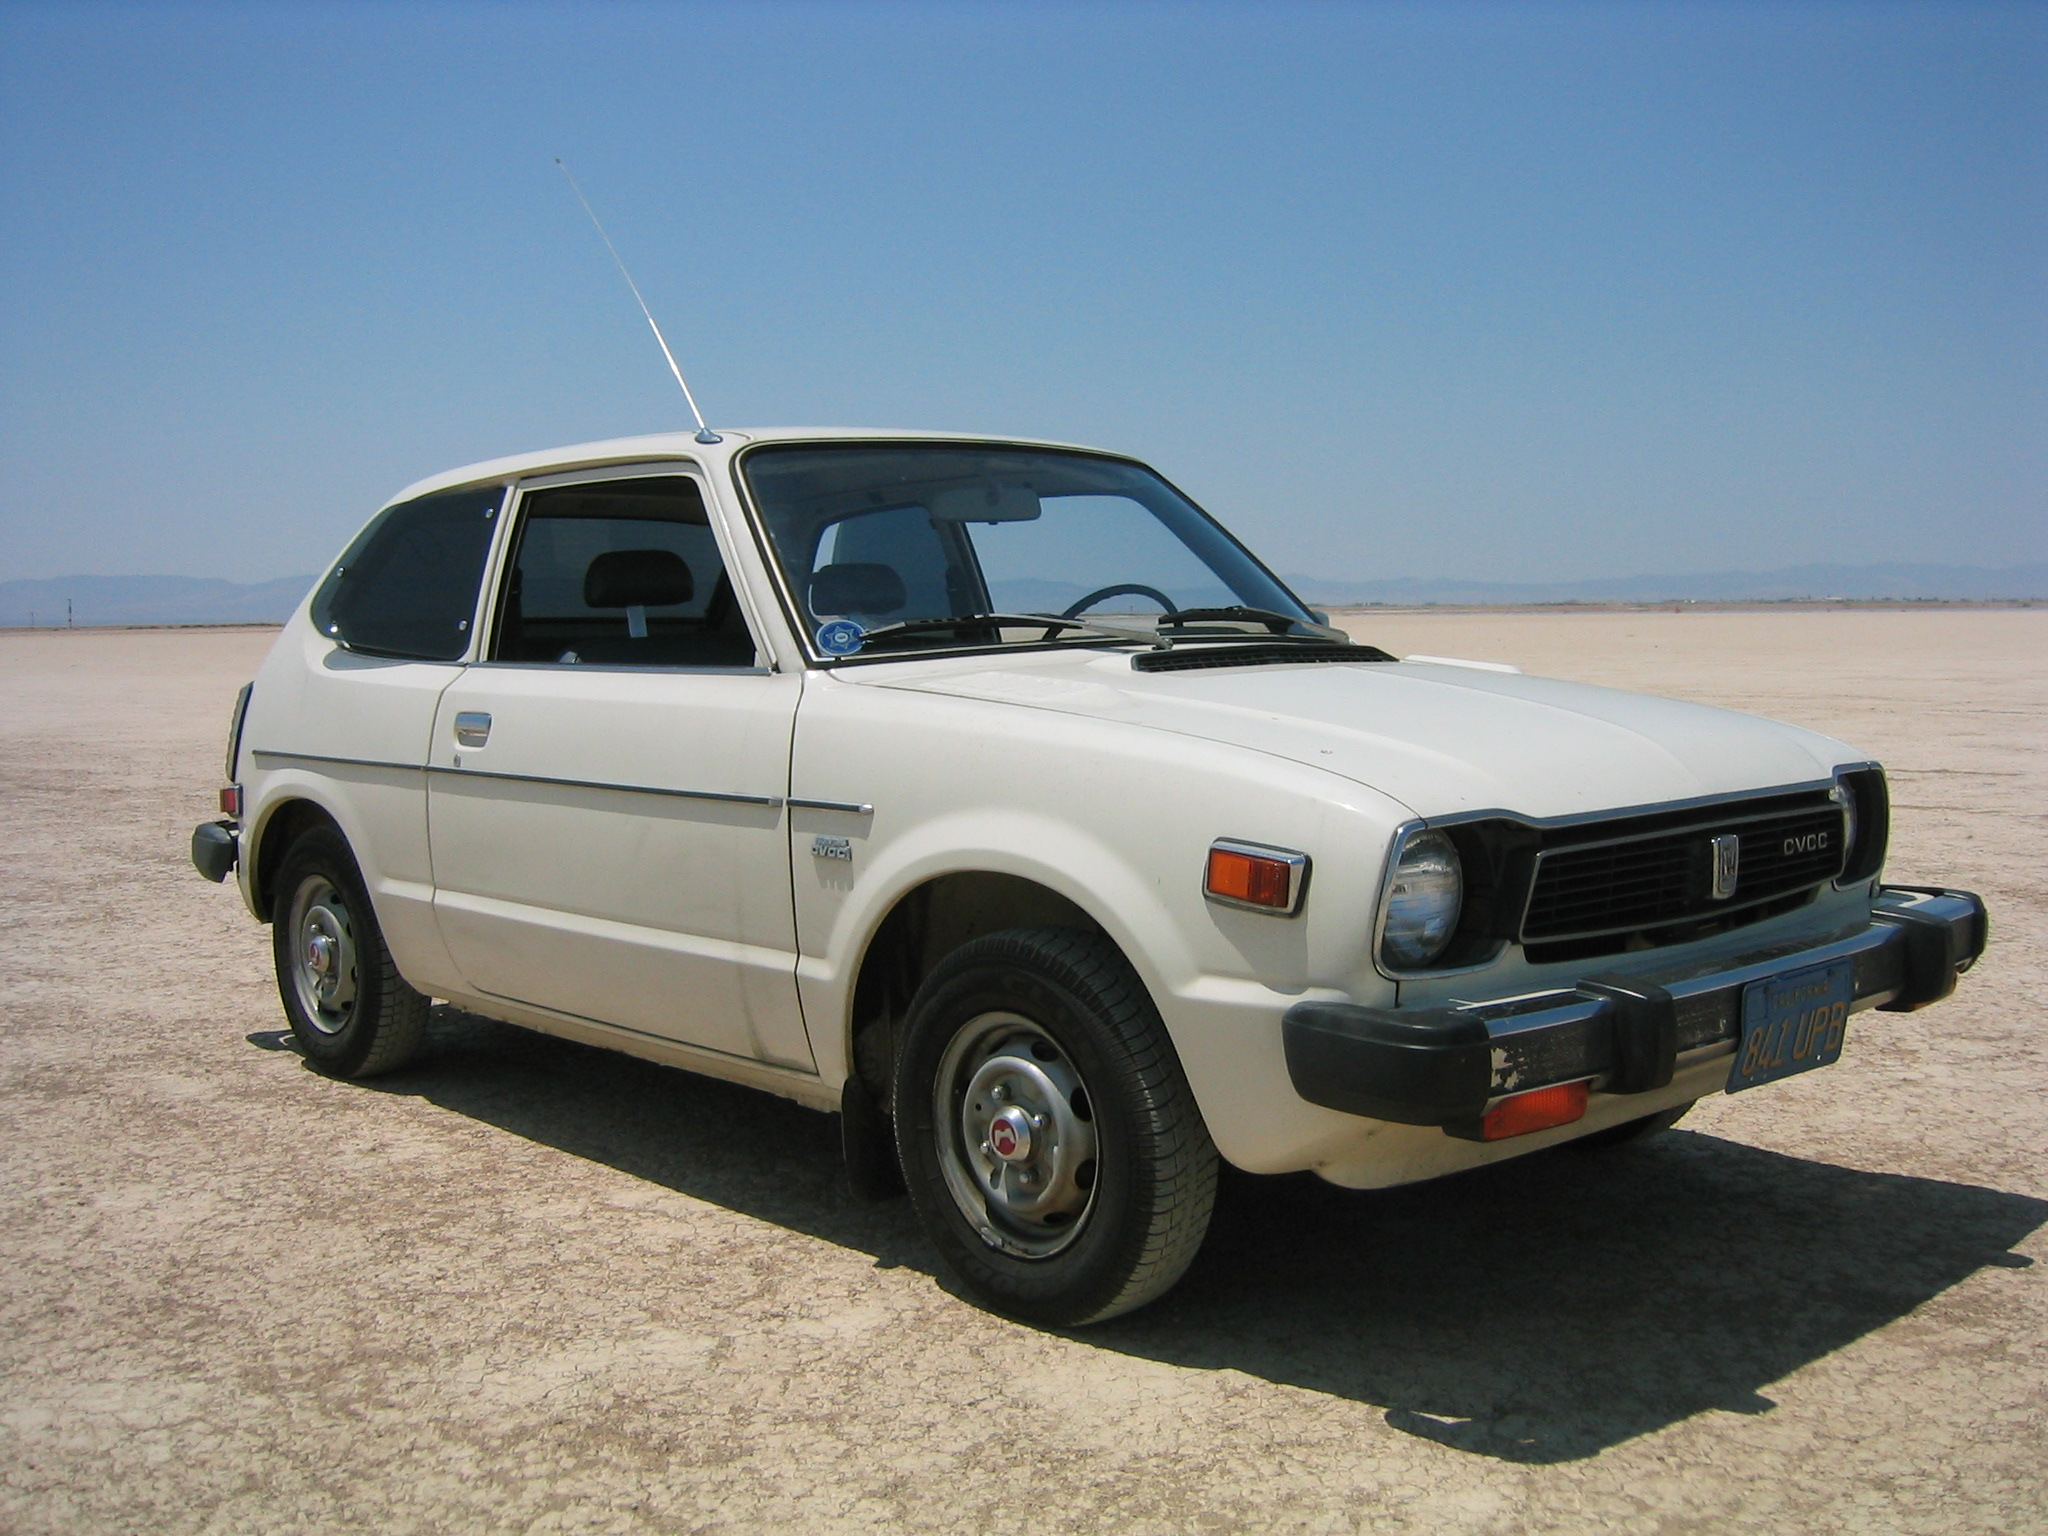 1978 Honda Civic CVCC | Flickr - Photo Sharing!